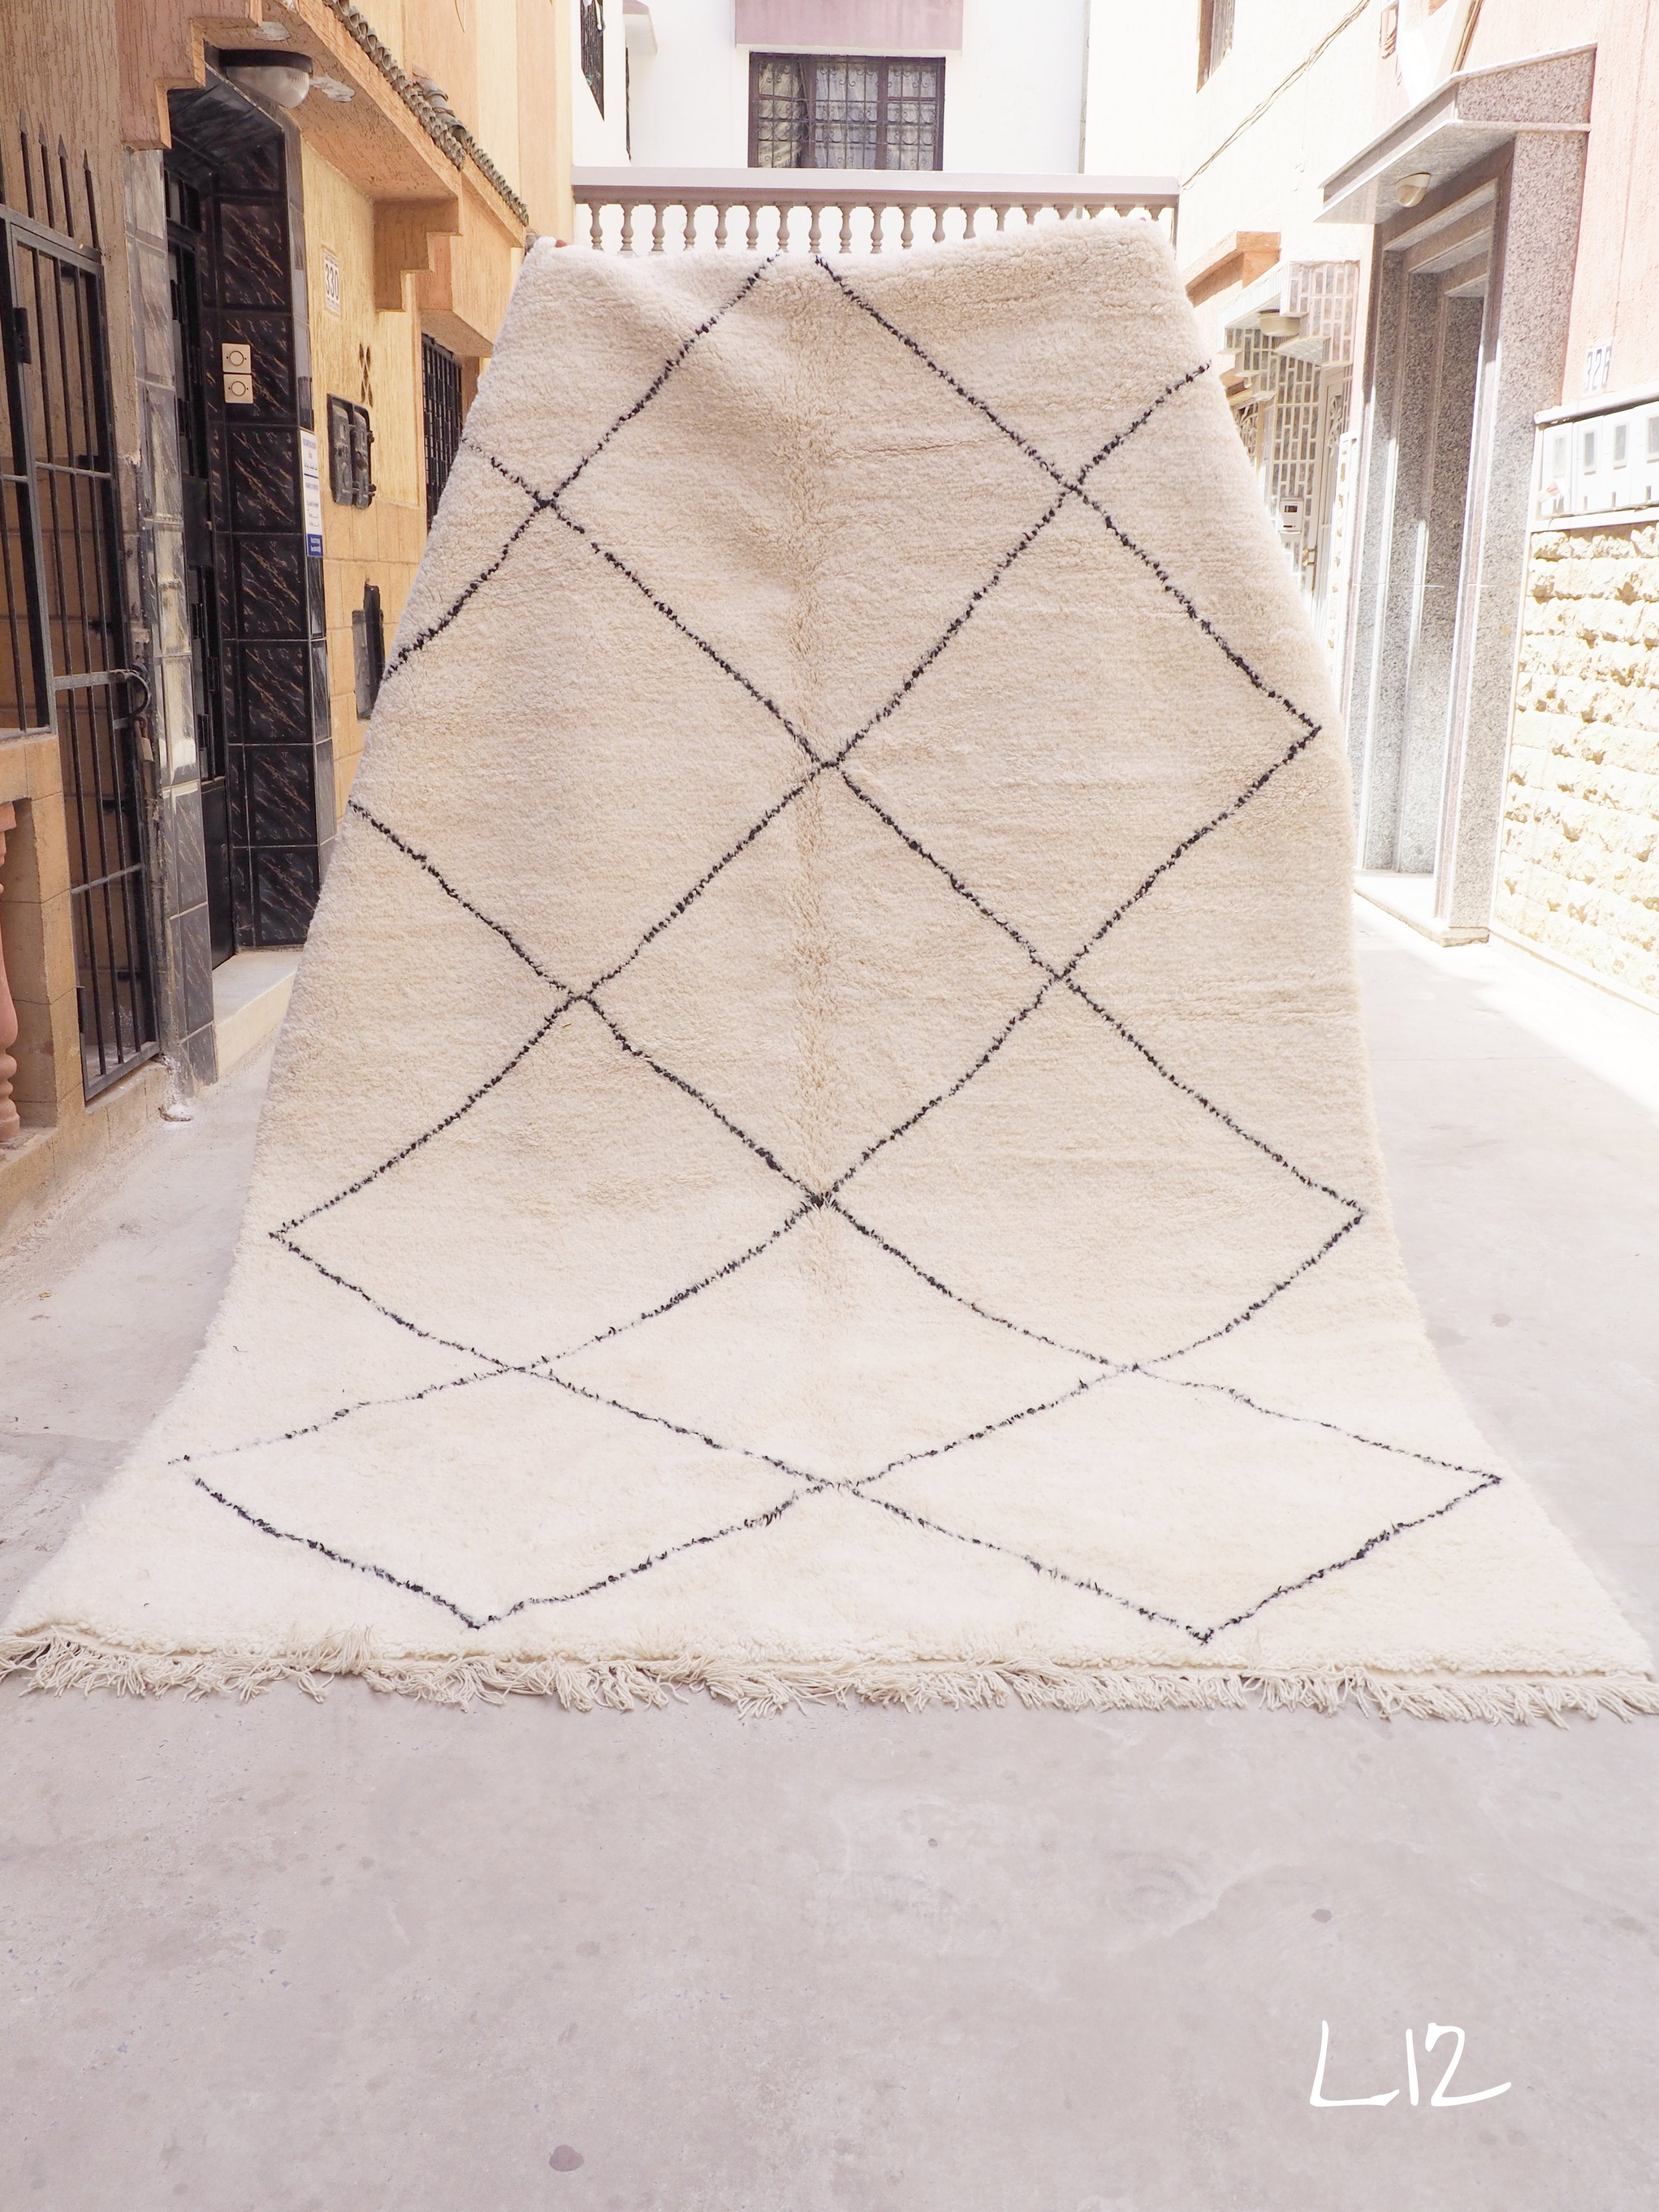 Beni Ourain Carpet - 320x200cm - Diamonds - OUED - Natural Wool - L12 - Carpets - THE PEOPLE OF SAND